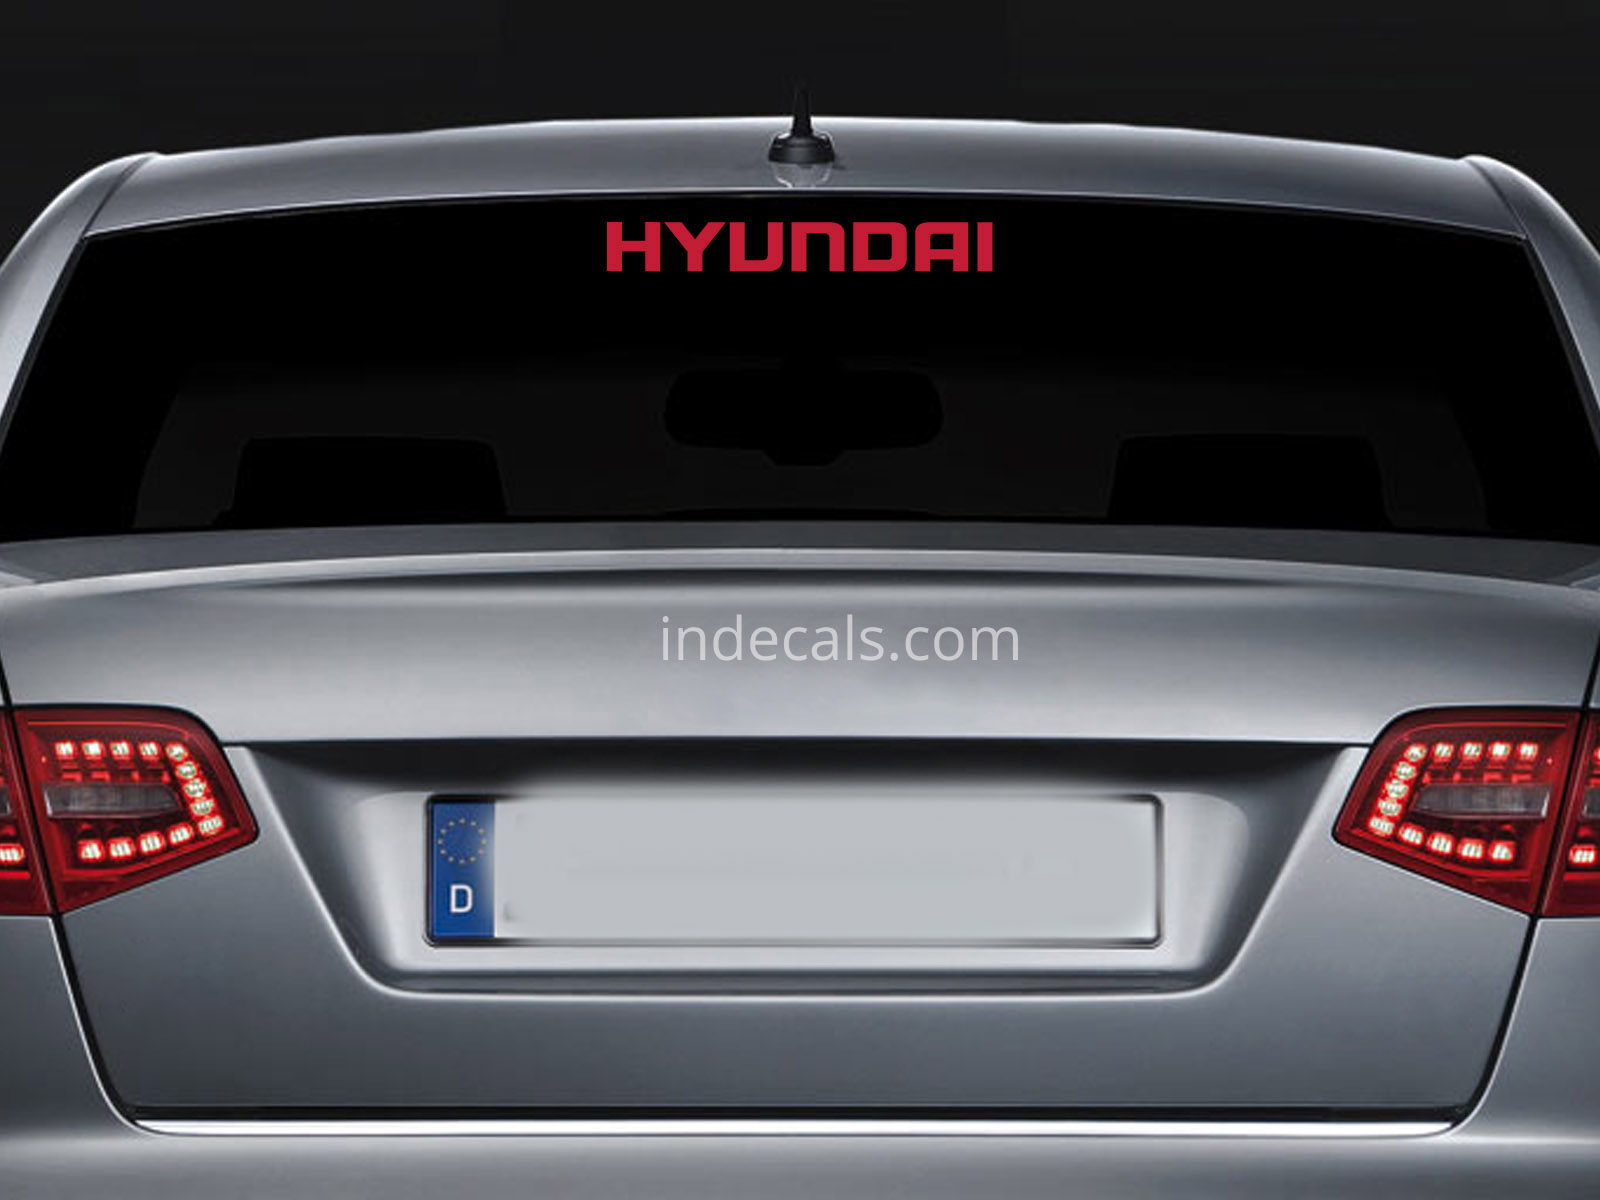 1 x Hyundai Sticker for Windshield or Back Window - Red